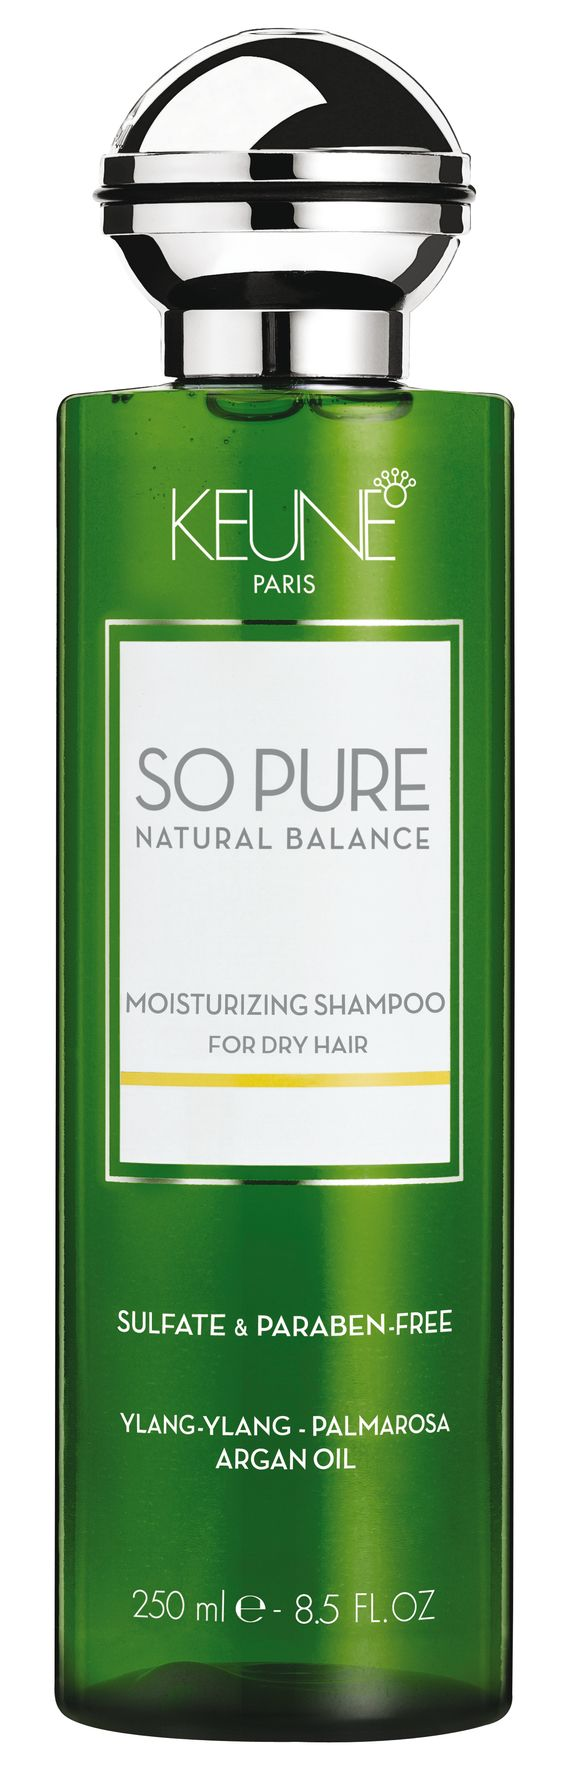 So Pure Moisturizing Shampoo